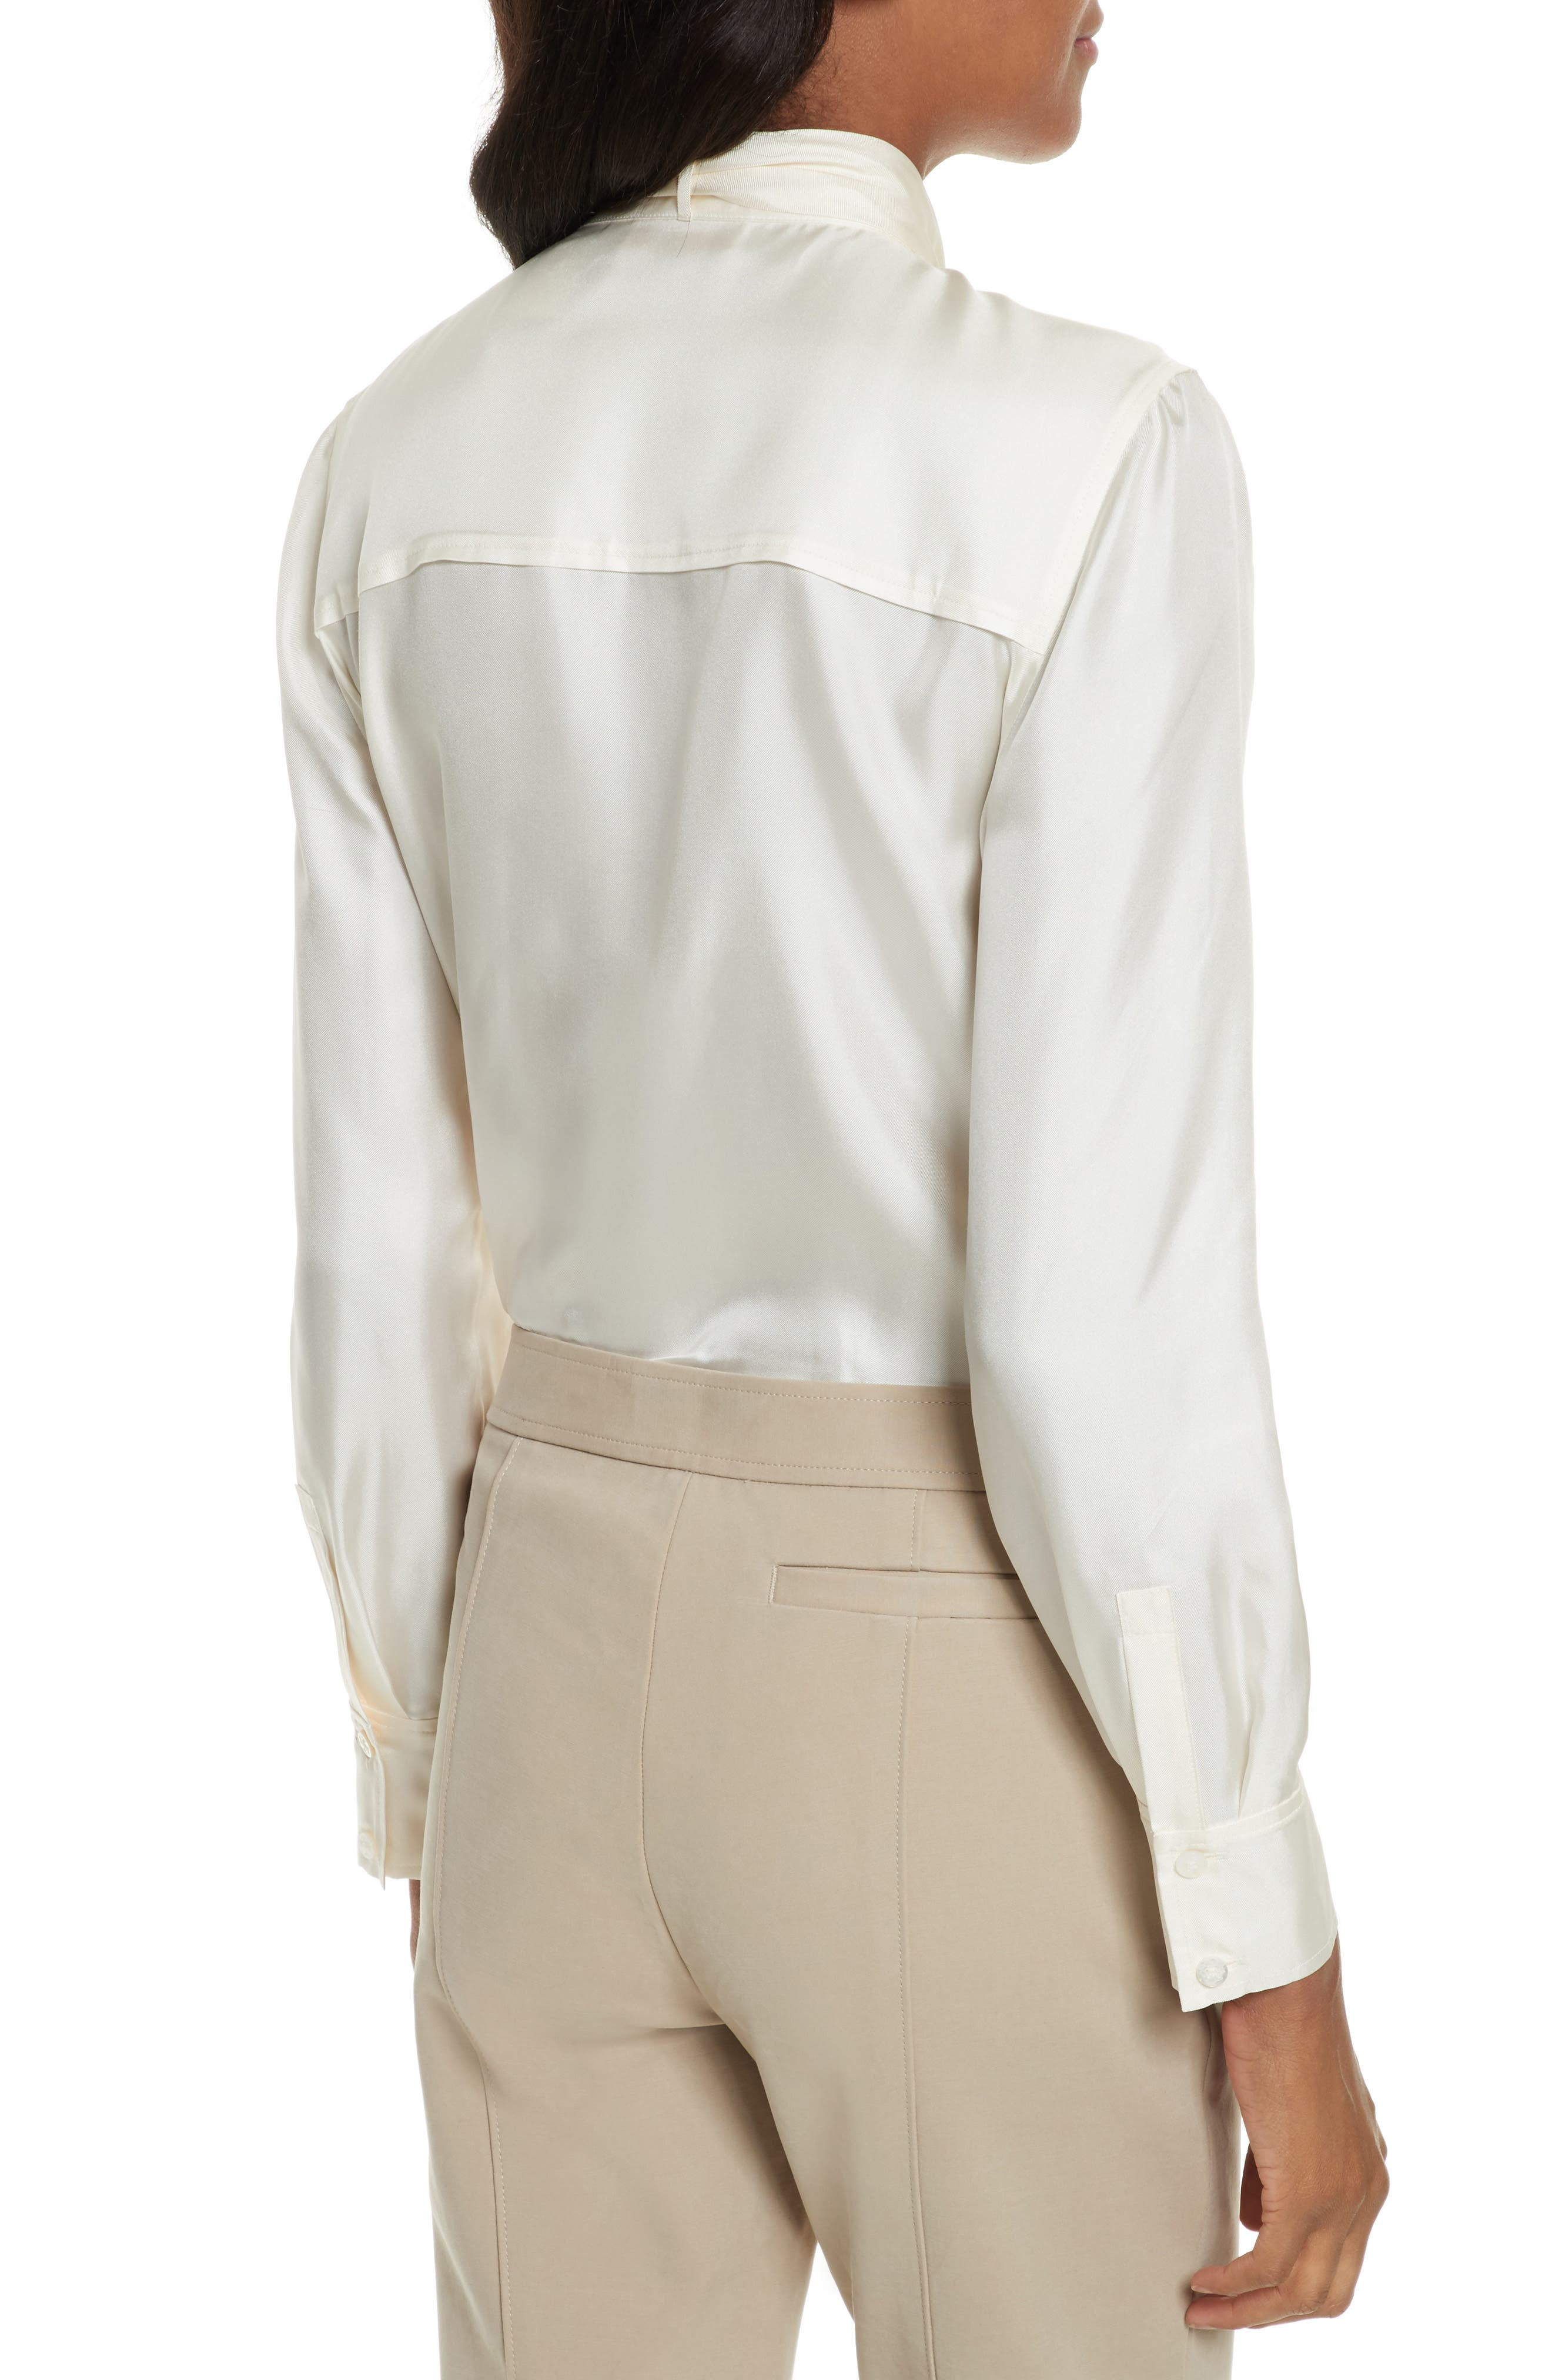 TORY BURCH,                             Holly Tie Neck Silk Blouse,                             Alternate thumbnail 2, color,                             904